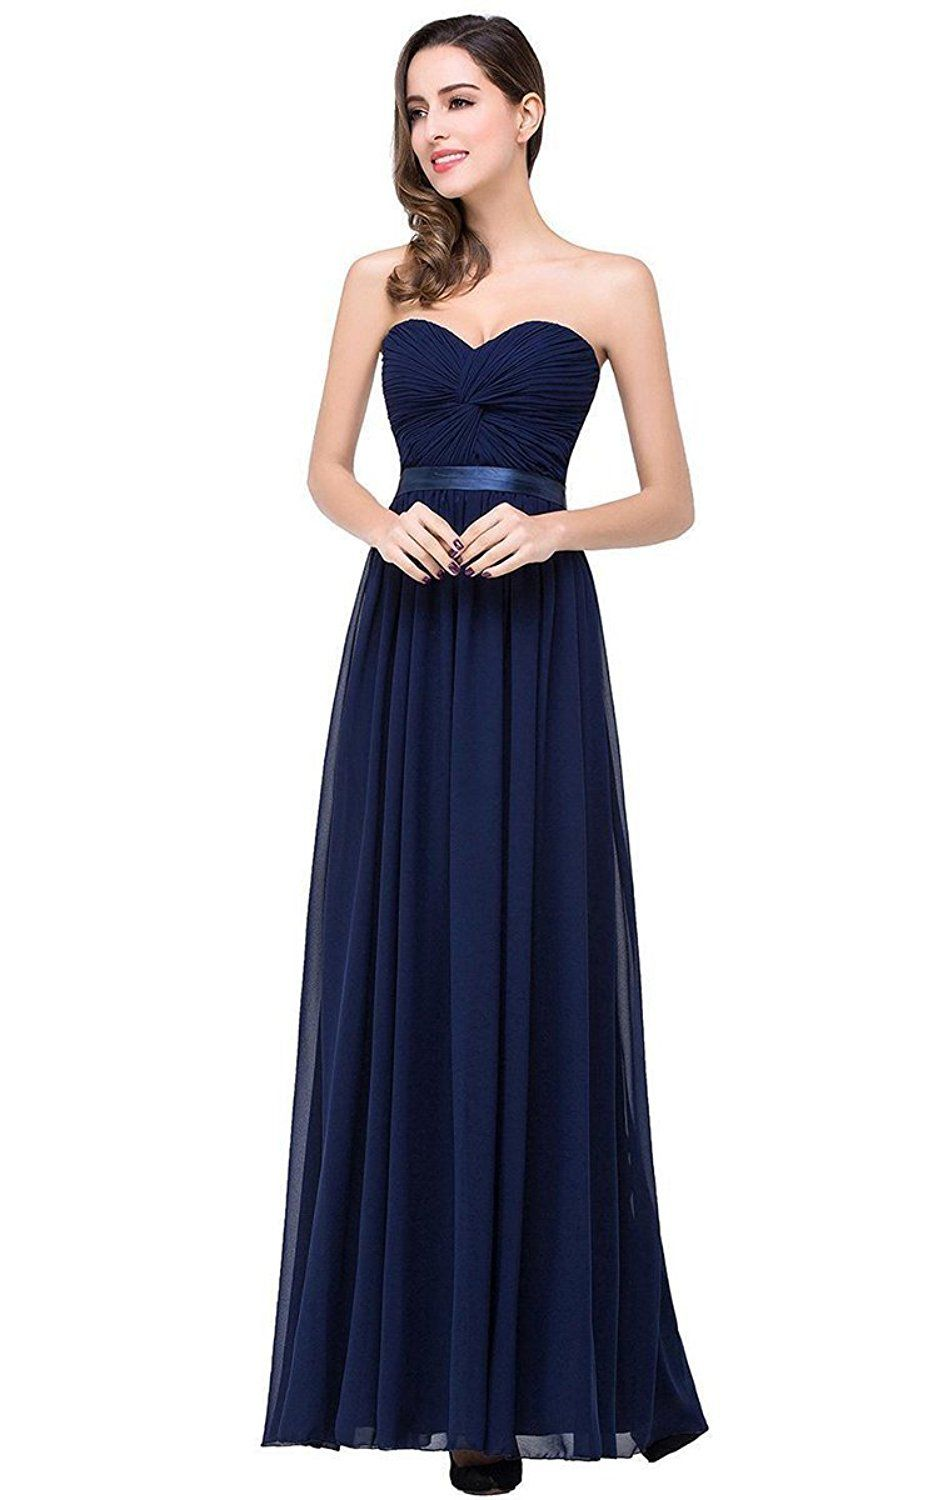 Sexy sweetheart chiffon navy blue bridesmaid dresses long prom